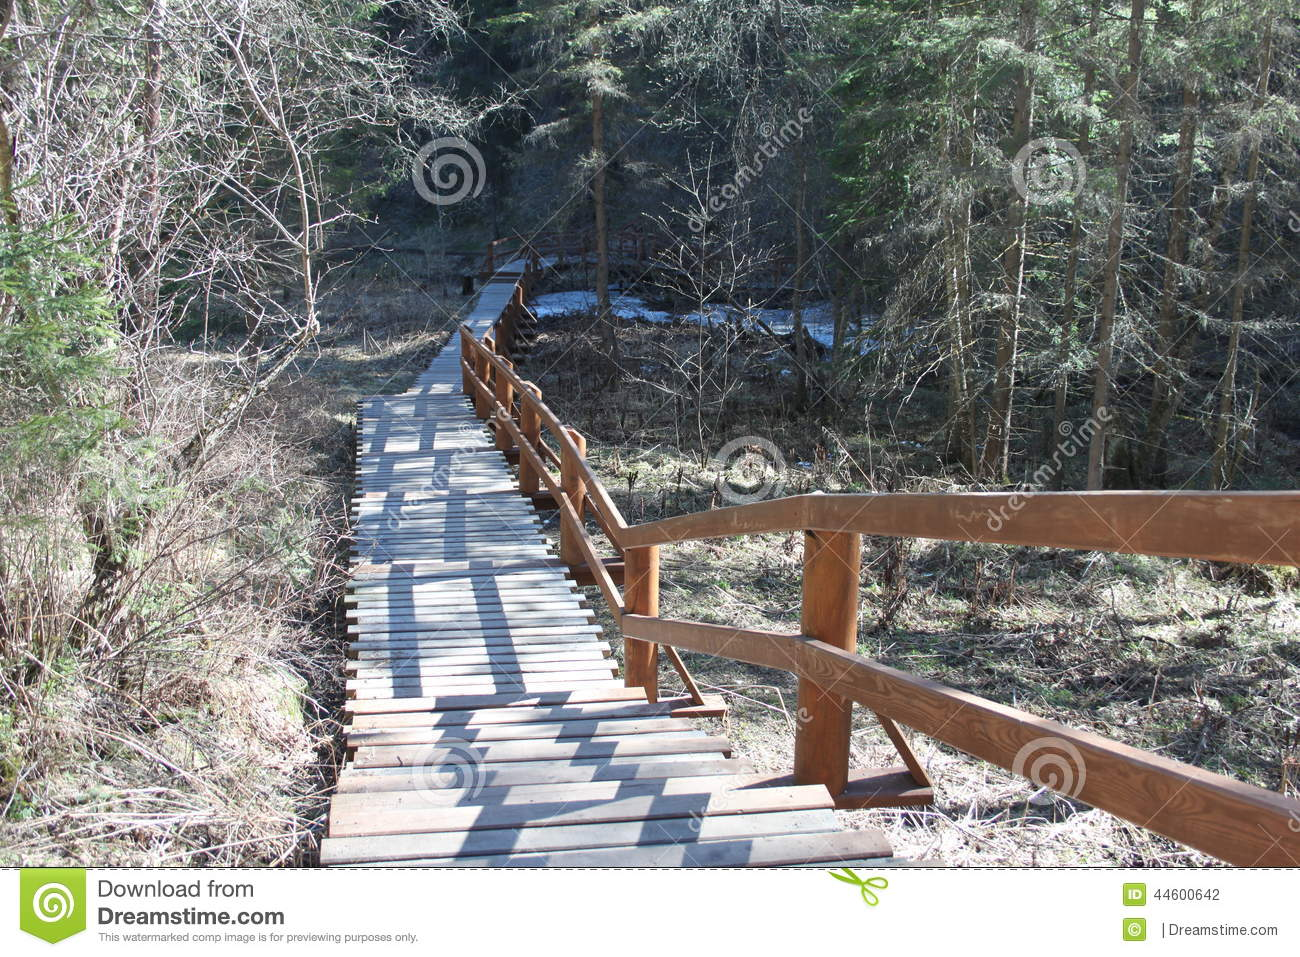 An ecological path for pedestrians in the form of wooden stairs in the coniferous forest in the territory of Krasnoyarskie stolby